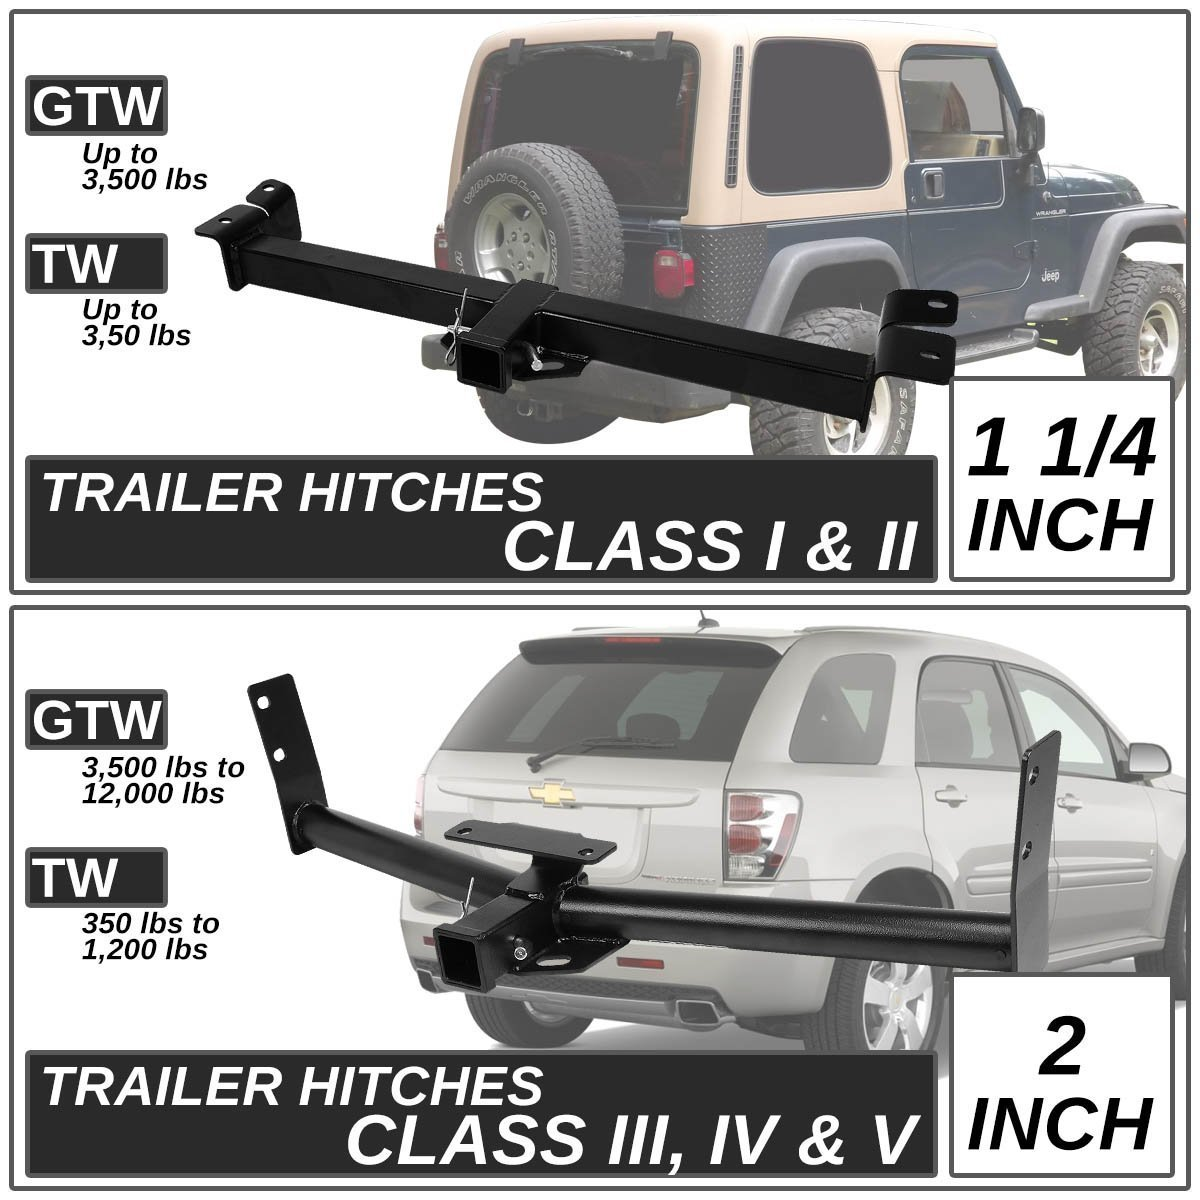 Acura RDX TB Class III Trailer Hitch Receiver Rear Tow Kit - Acura tow hitch